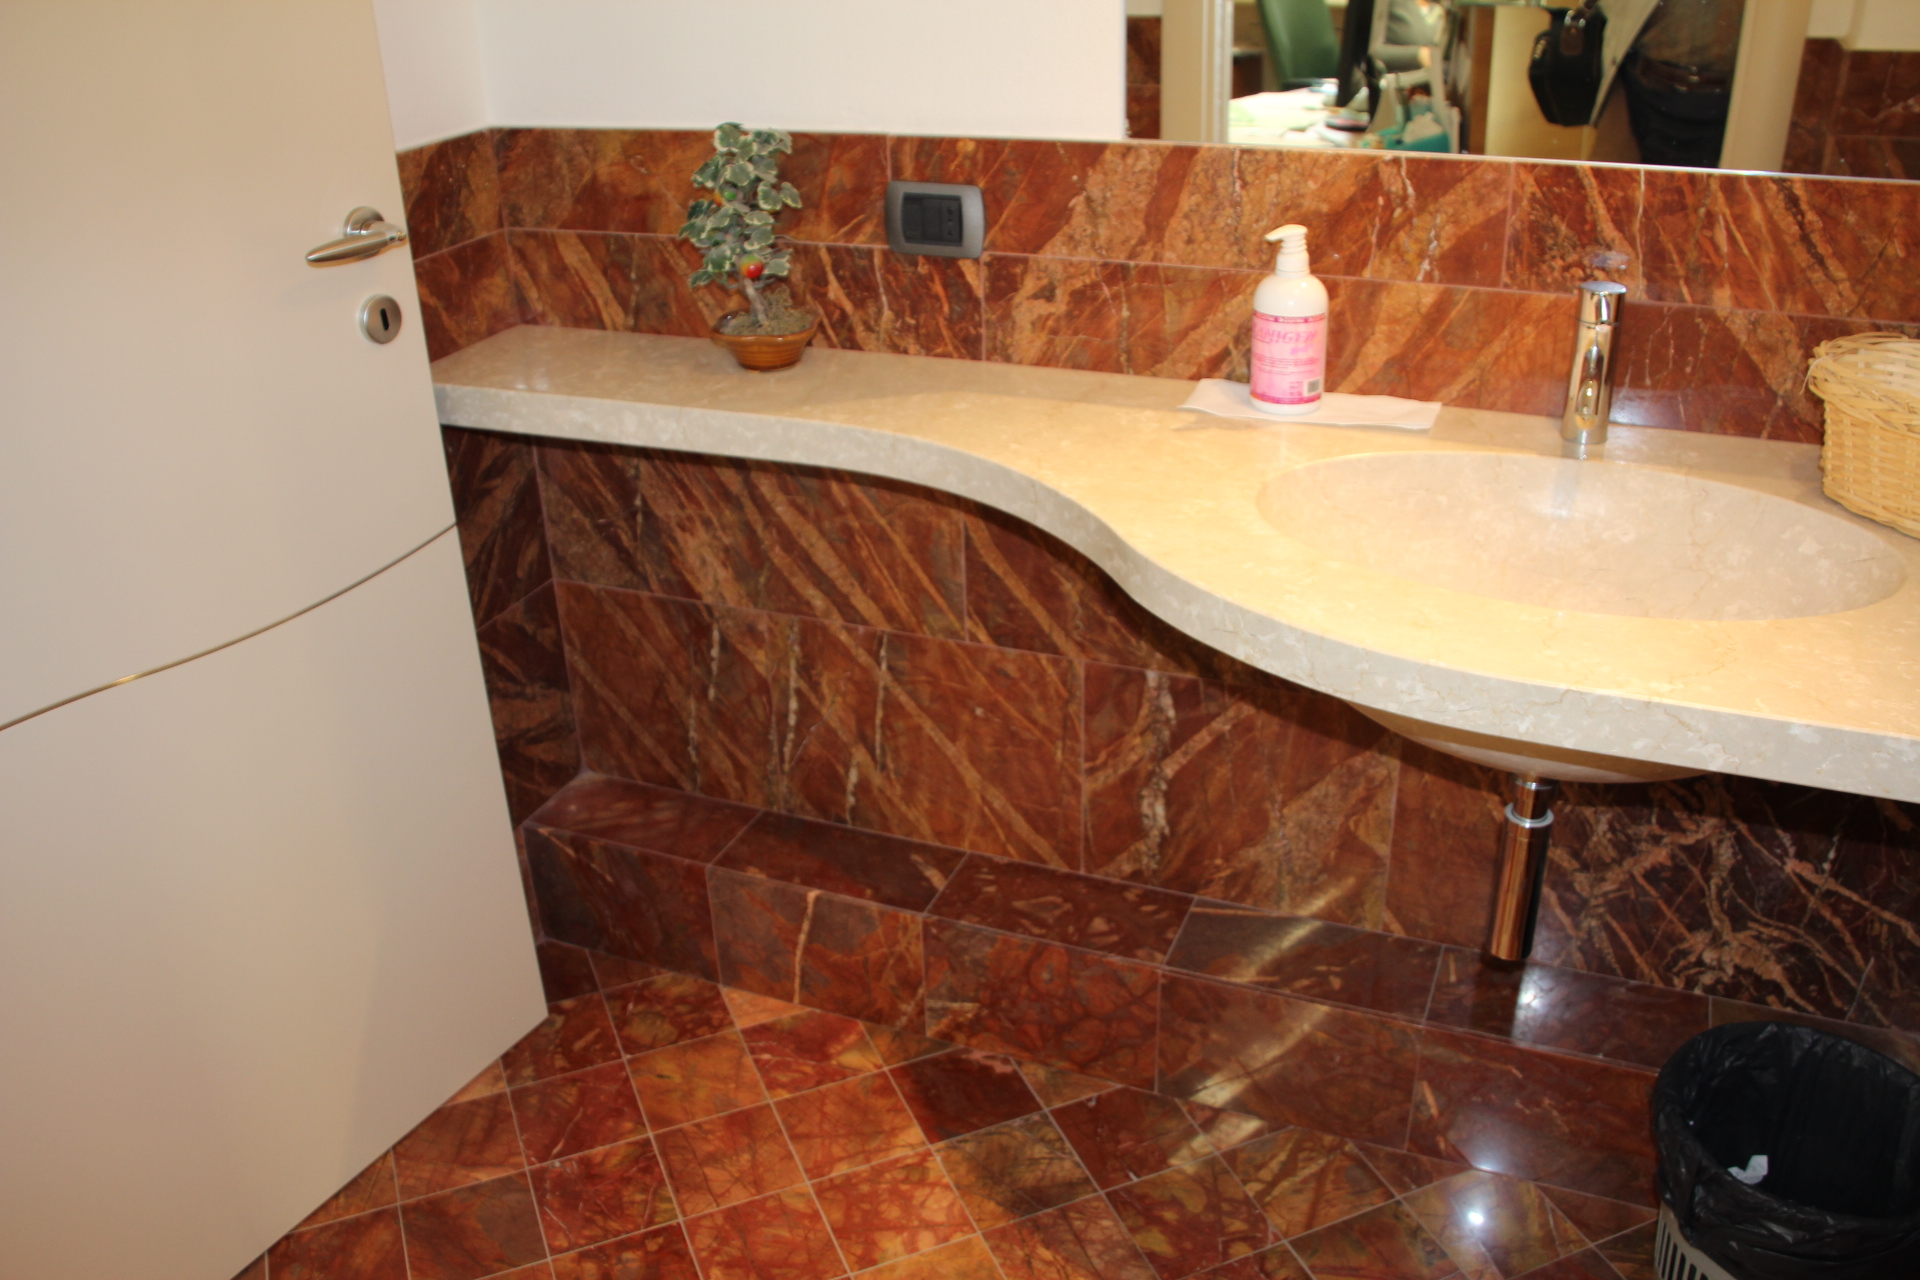 bellissimo bagno in